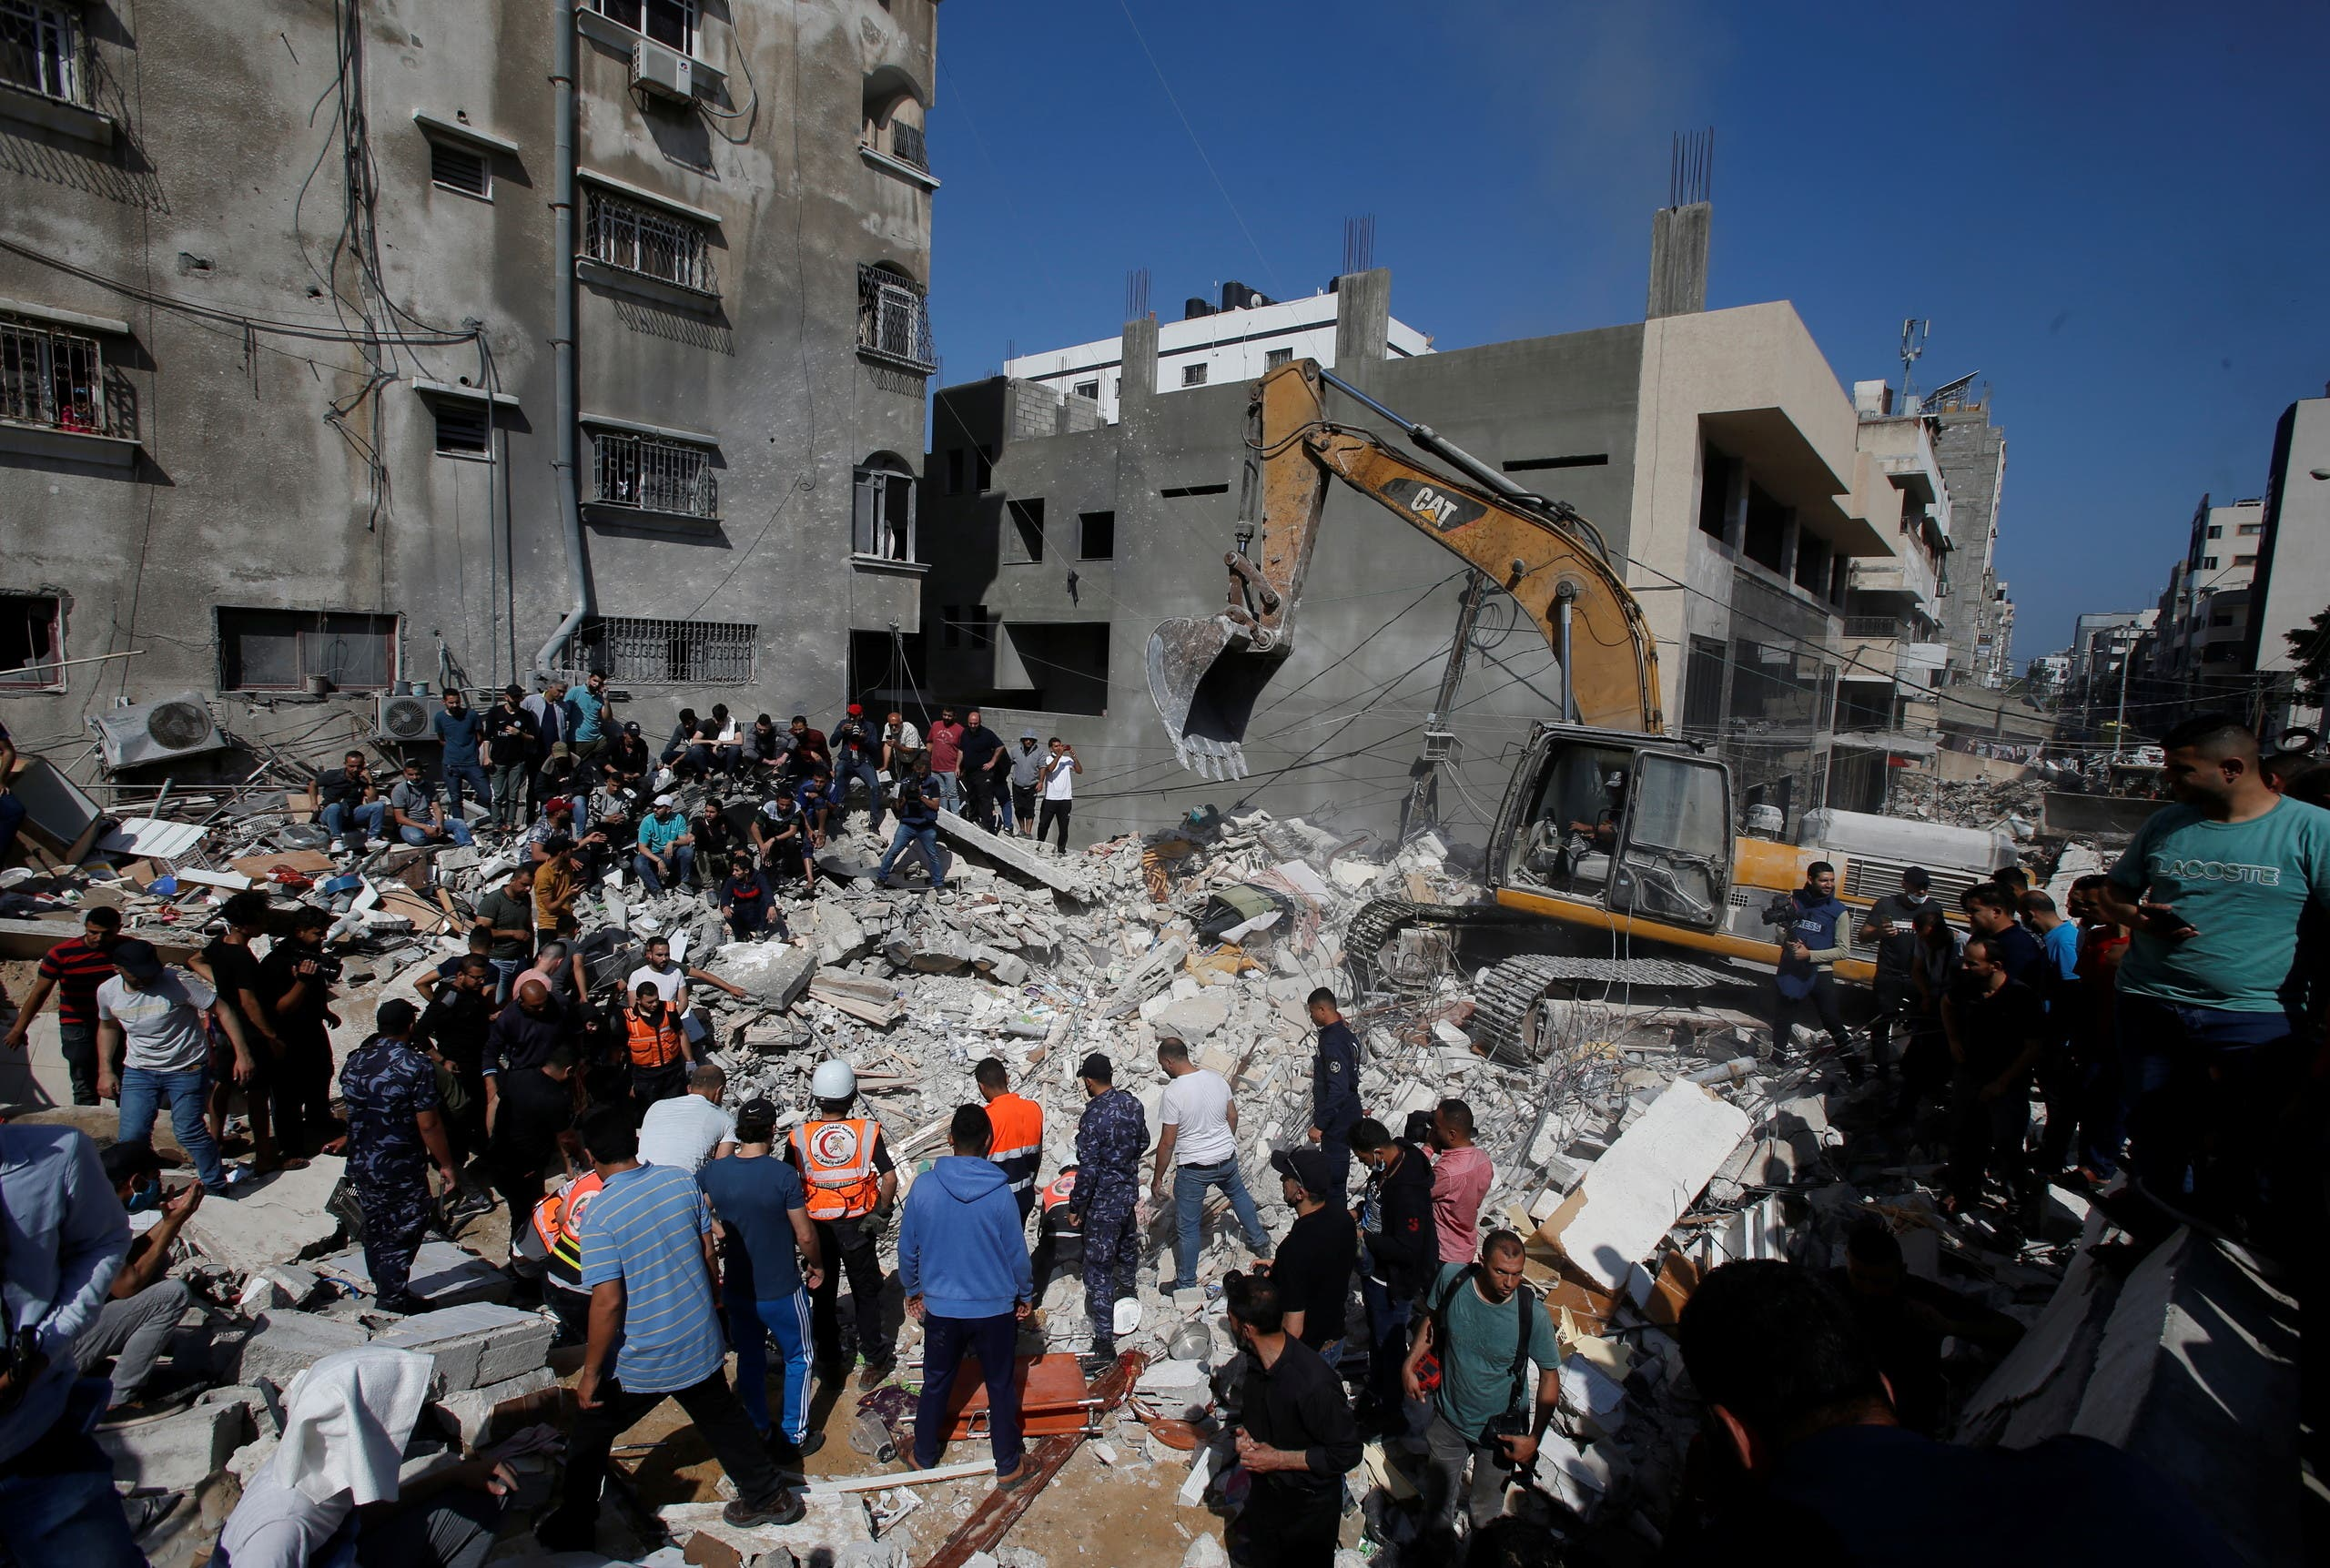 Rescue workers search for victims amid rubble at the site of Israeli air strikes, in Gaza City May 16, 2021. (Reuters)